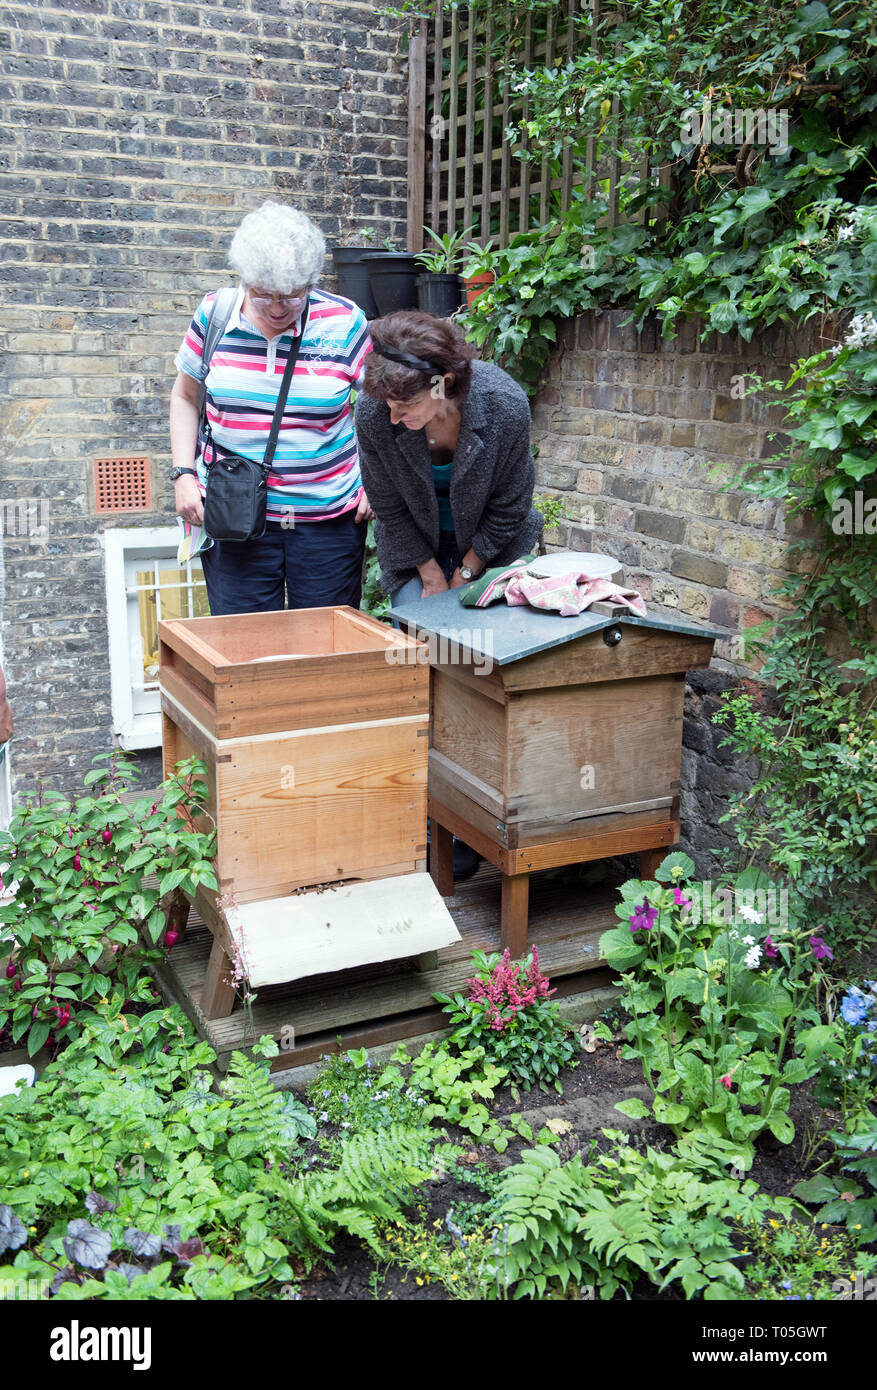 Ladies looking at bee hives, Melissa Garden Bee Sanctuary with bee friendly plants in foreground, Compton Terrace, London Borough of Islington - Stock Image